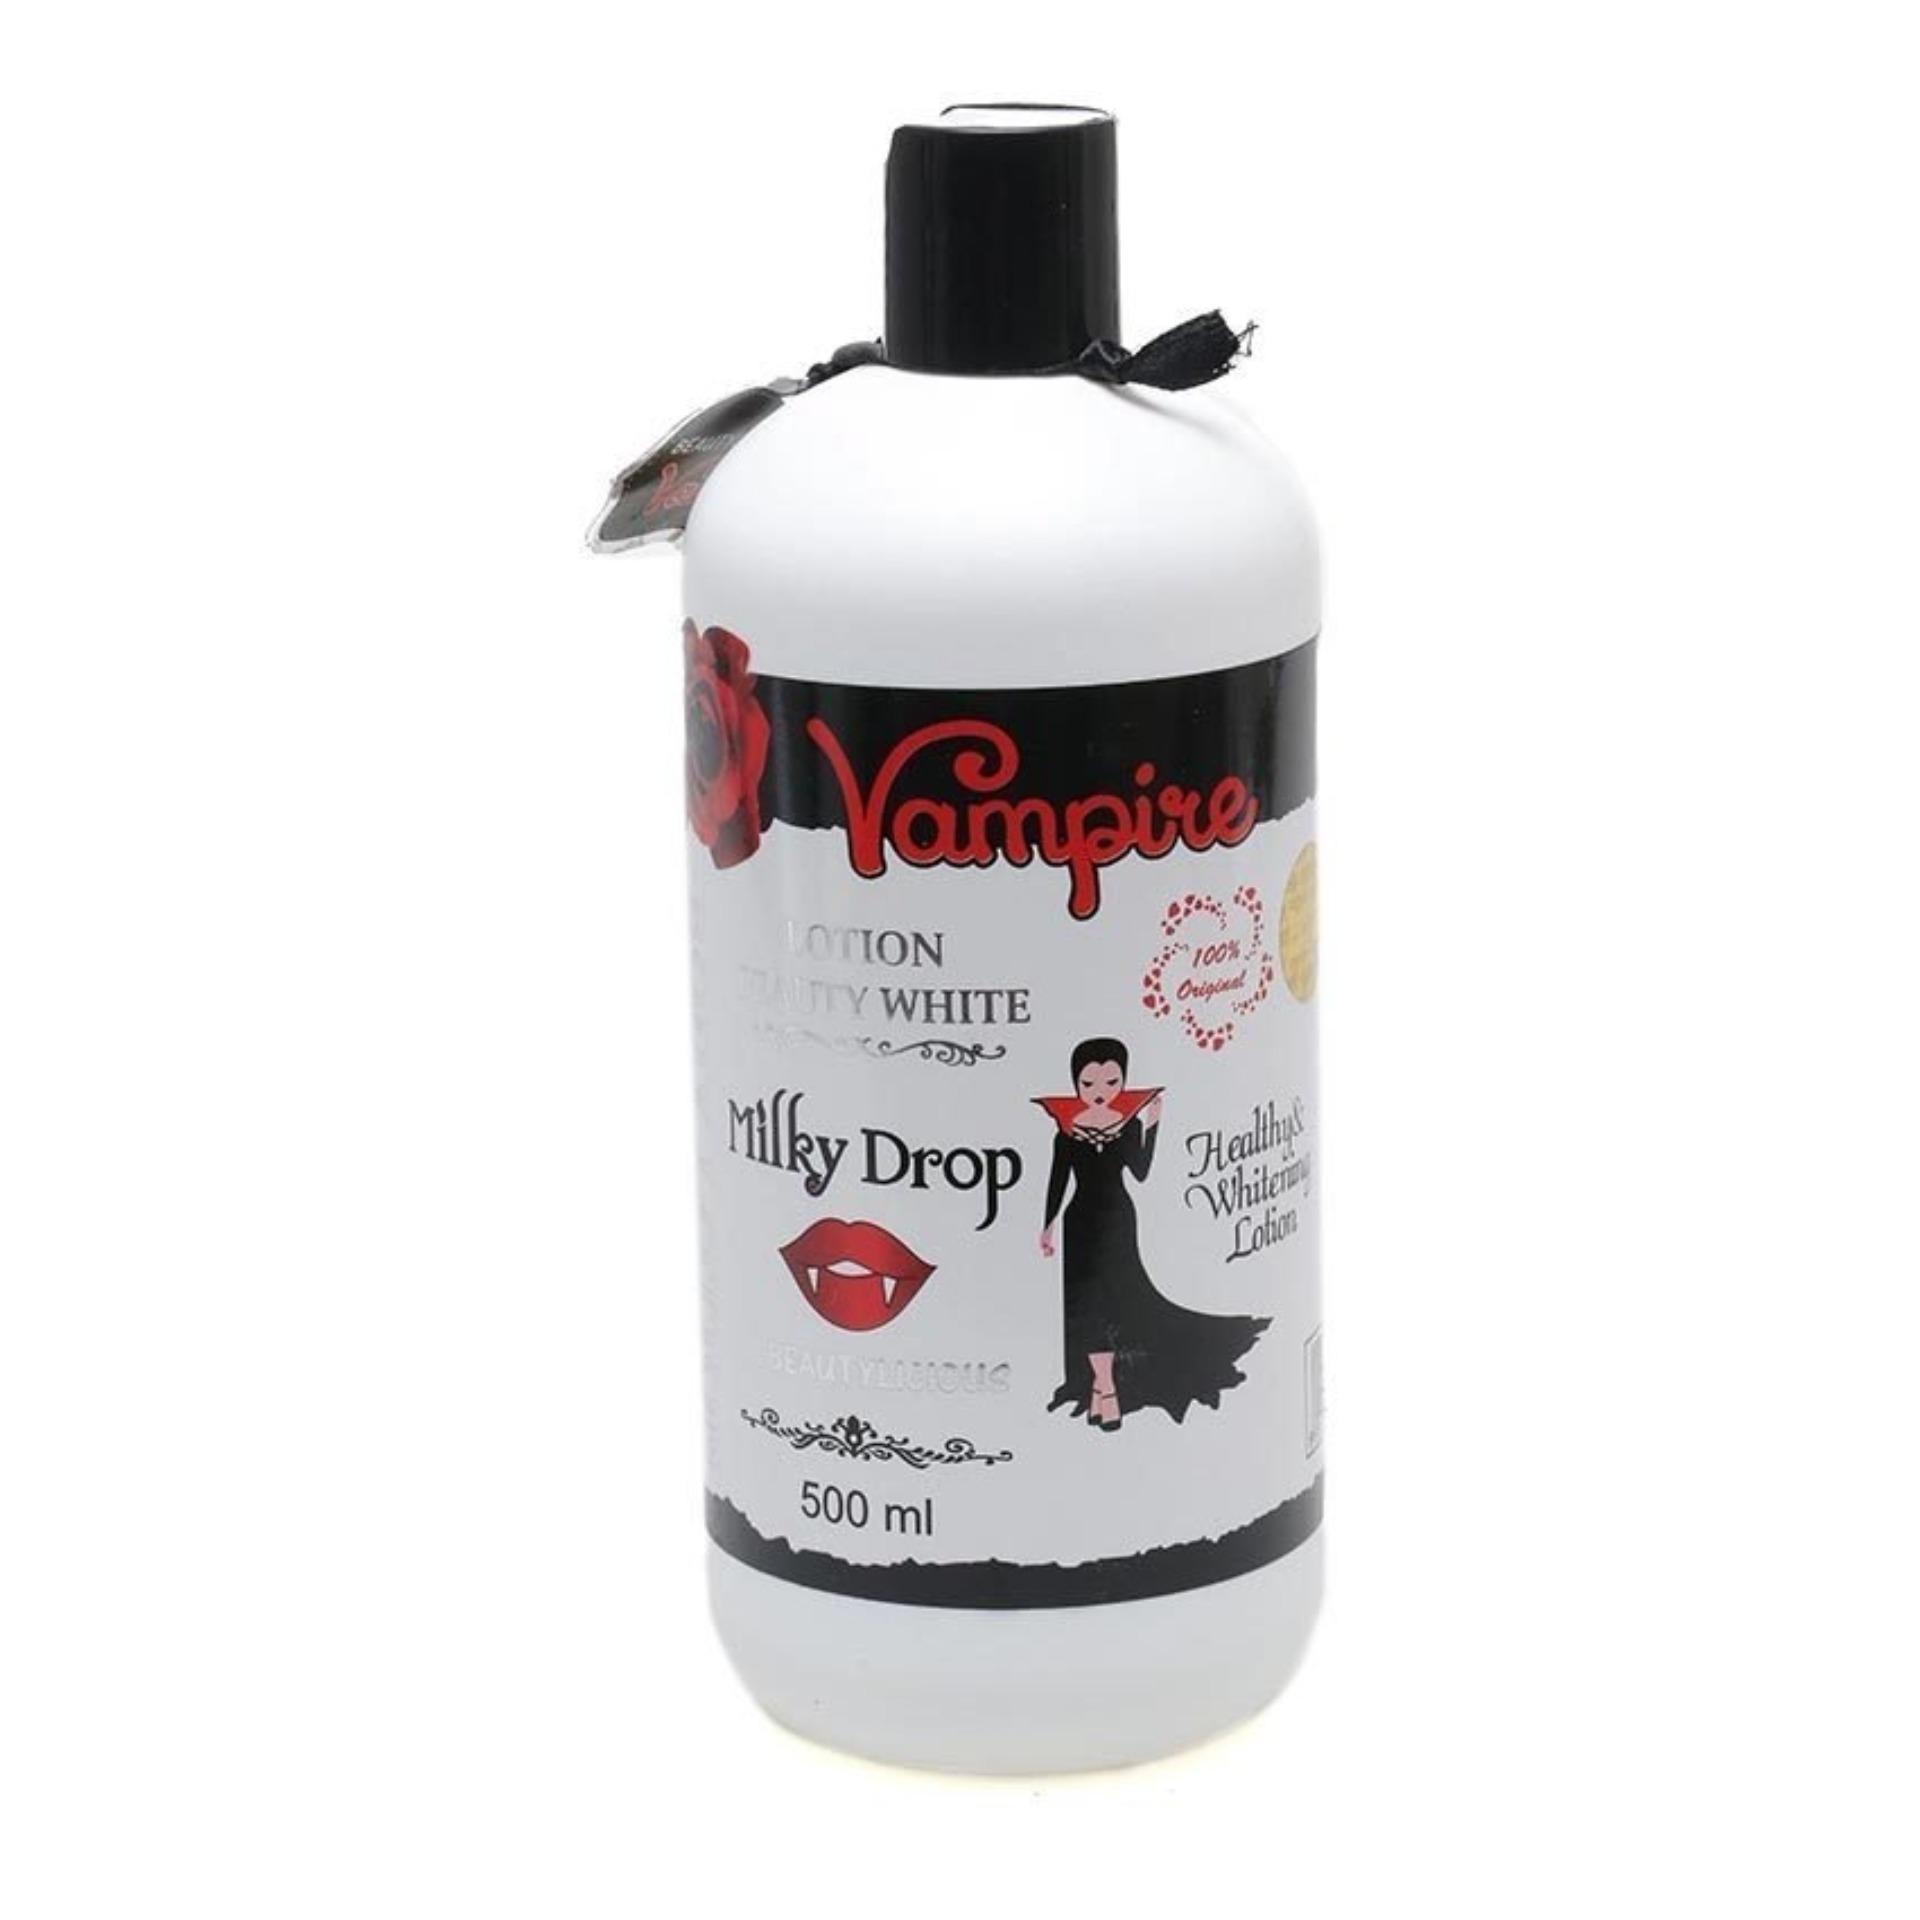 Vampire Lotion Beauty White Milky Drop - Body Lotion Vampire BPOM 500ml Original